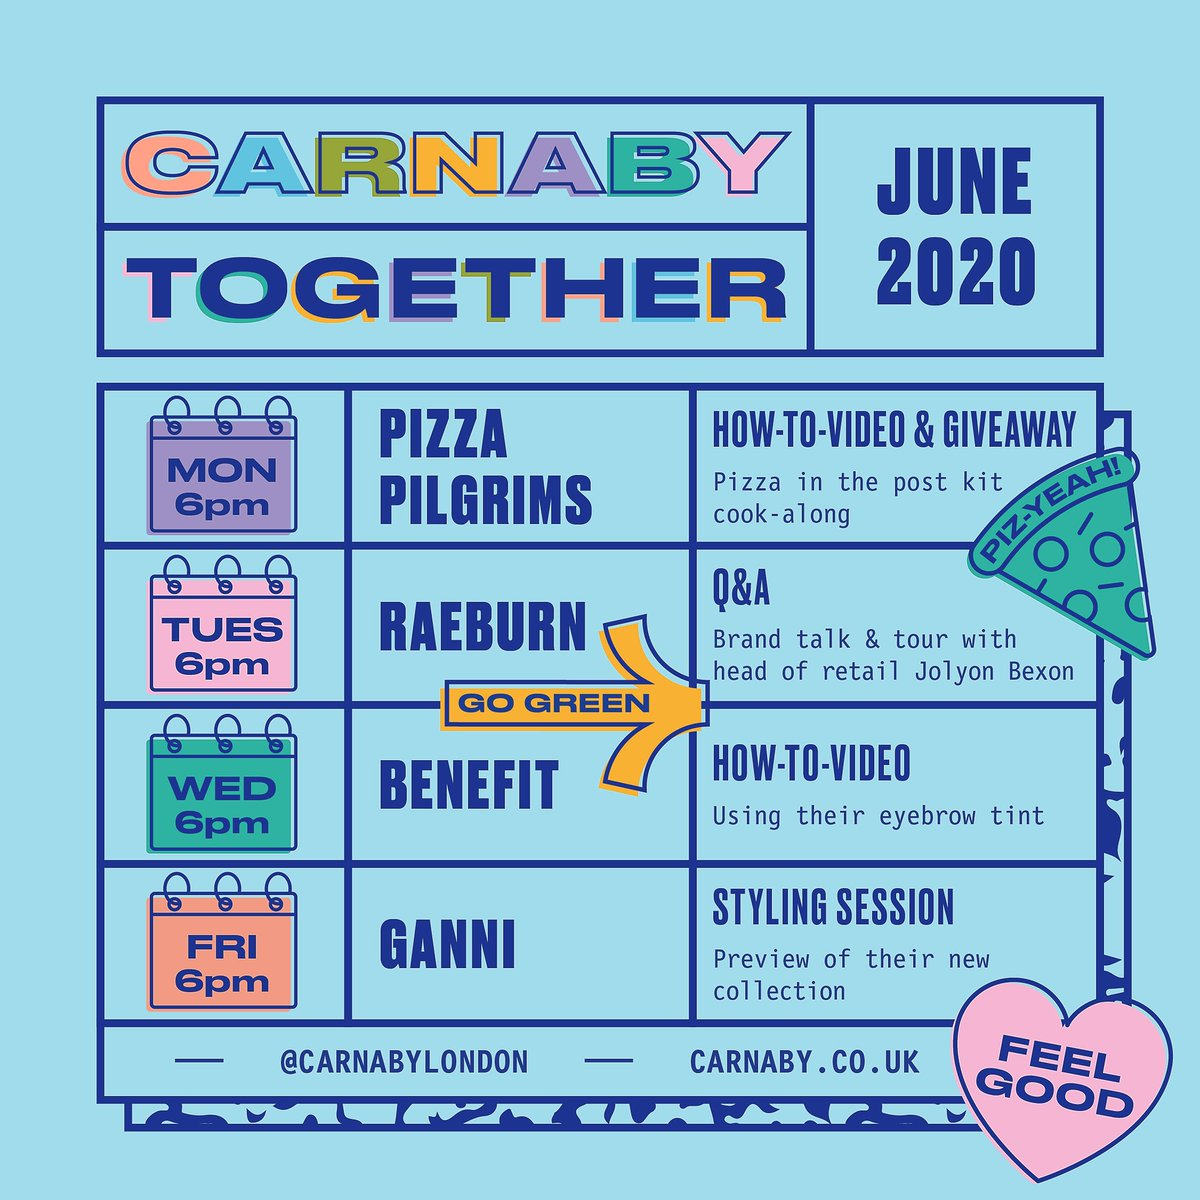 It is the final week of #CarnabyTogether and we have a jam-packed schedule of activities this week. Tune in to our Q+A with @Raeburn_Design, a how-to with @BenefitUK and a styling session with GANNI. Tune in at 6pm today for an exciting @pizzapilgrims #giveaway! https://t.co/QXOvIryTAk